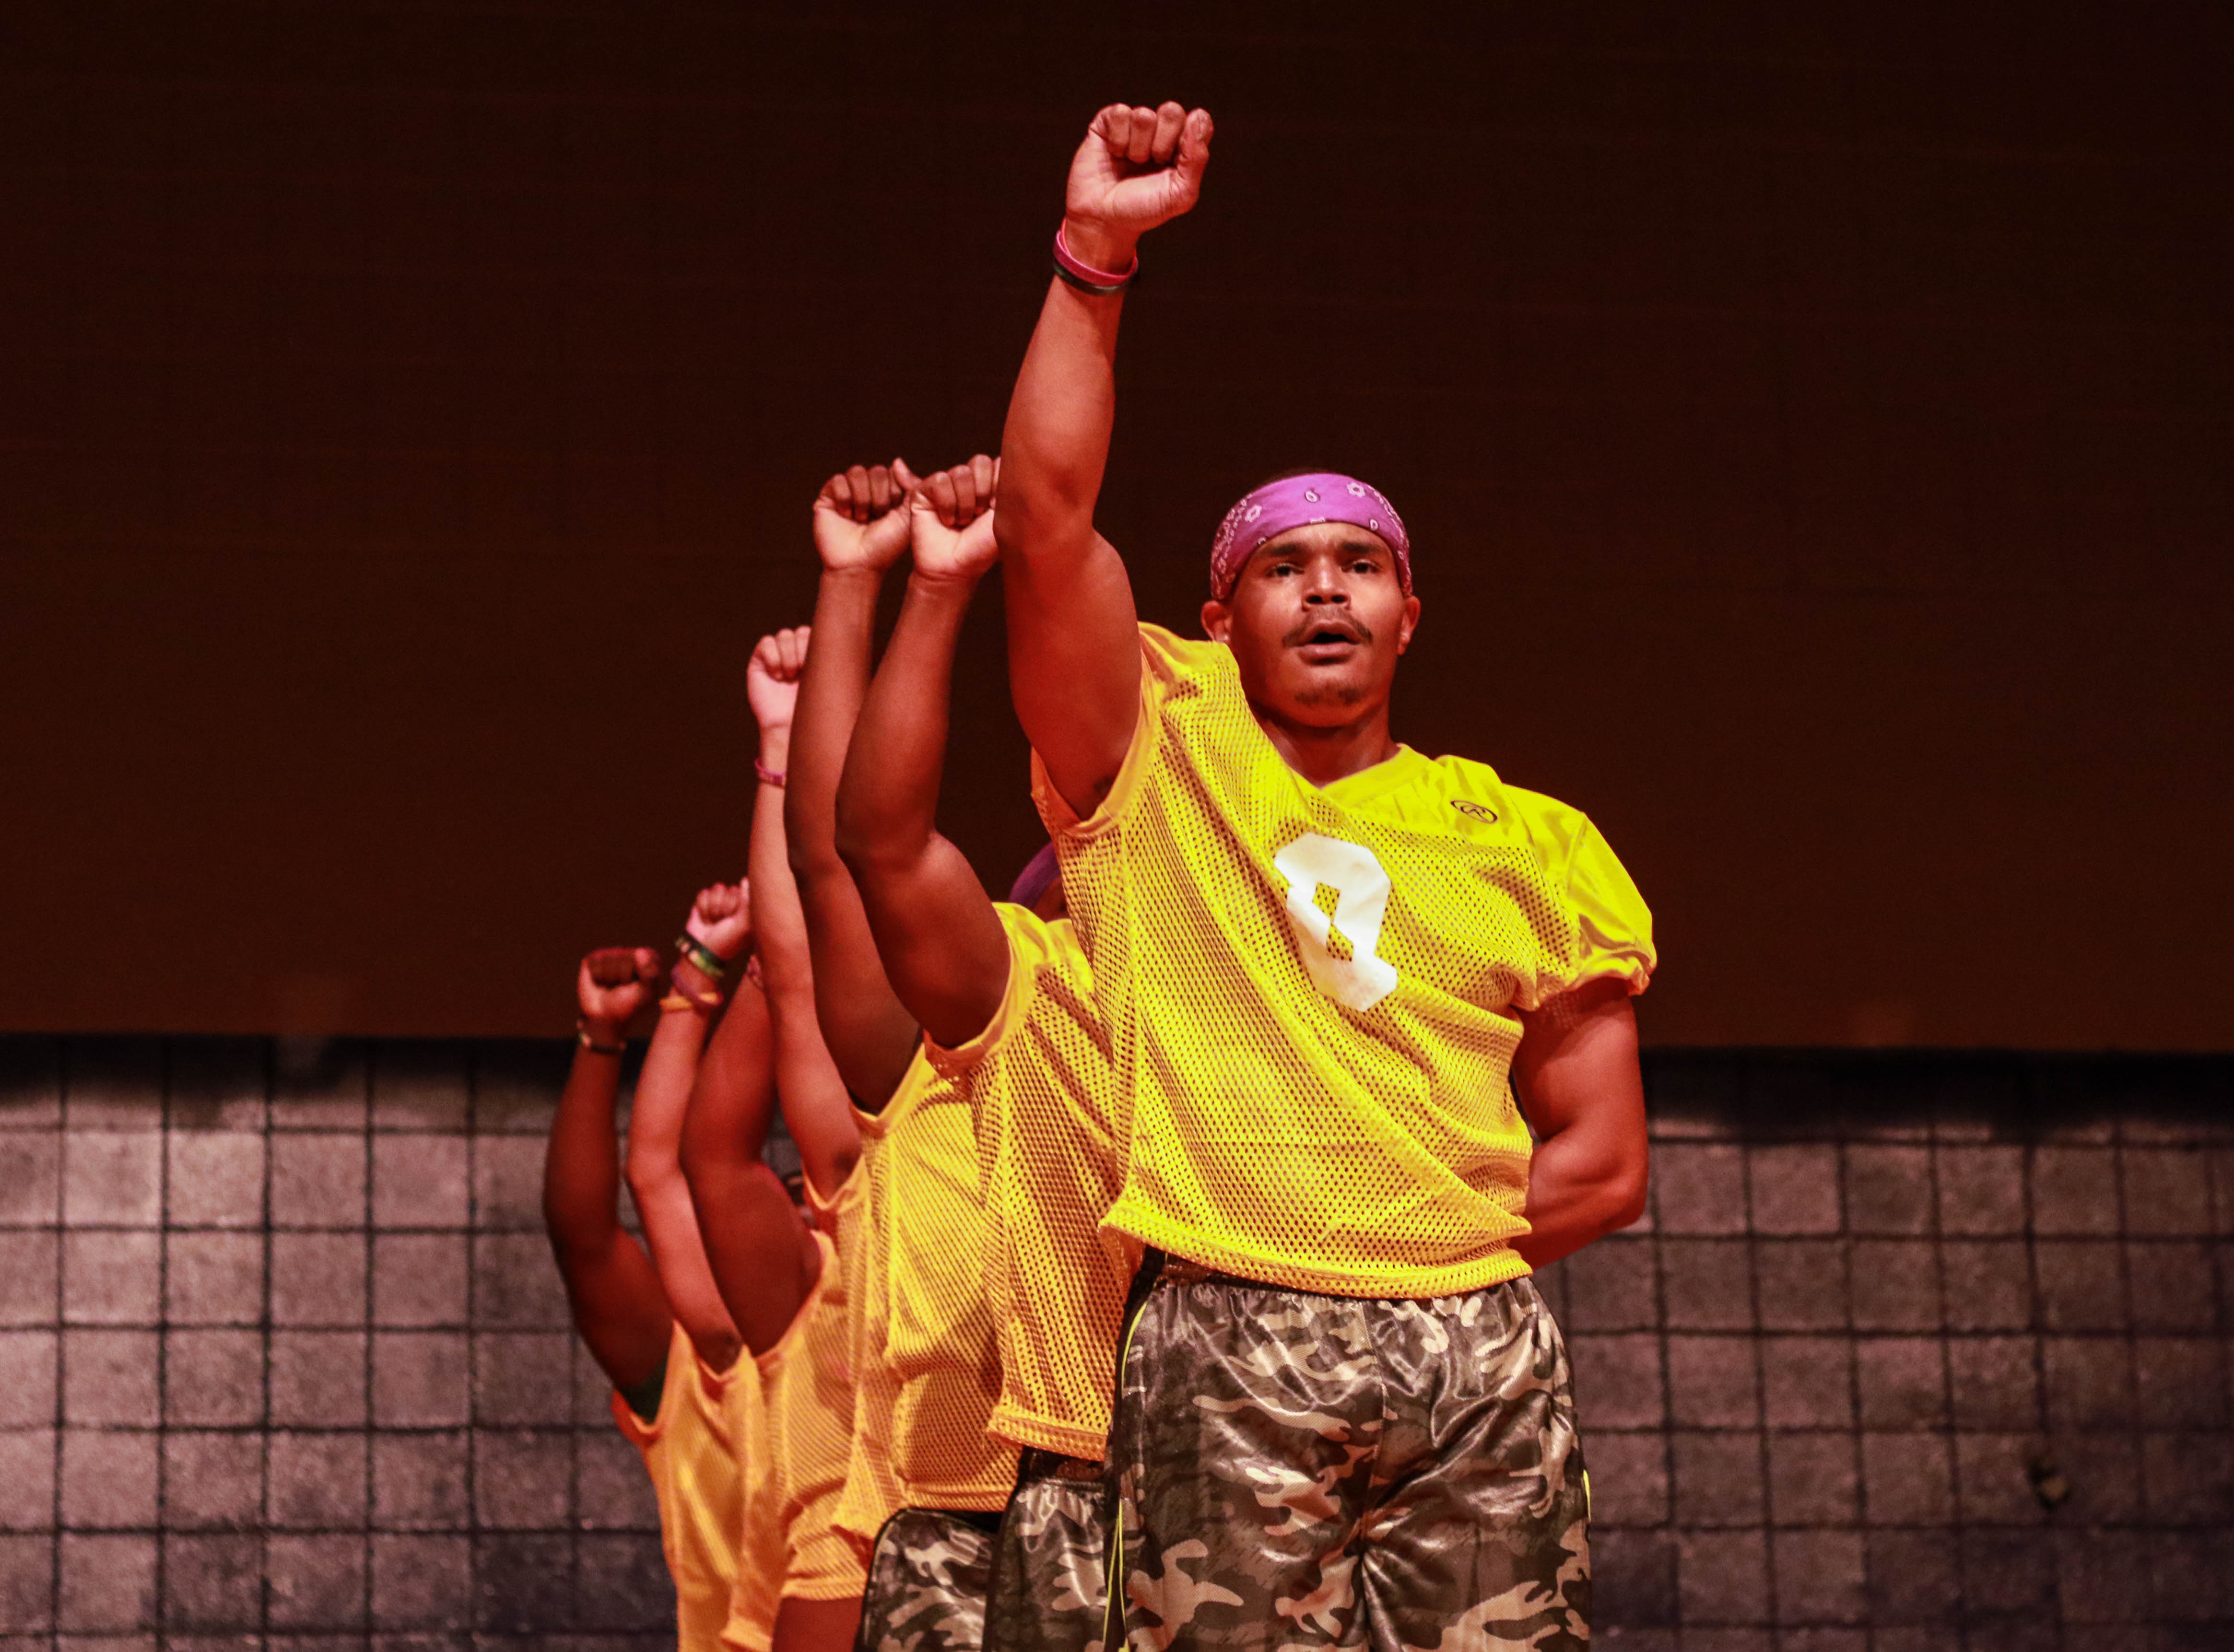 Men at the NPHC Step Show performing.